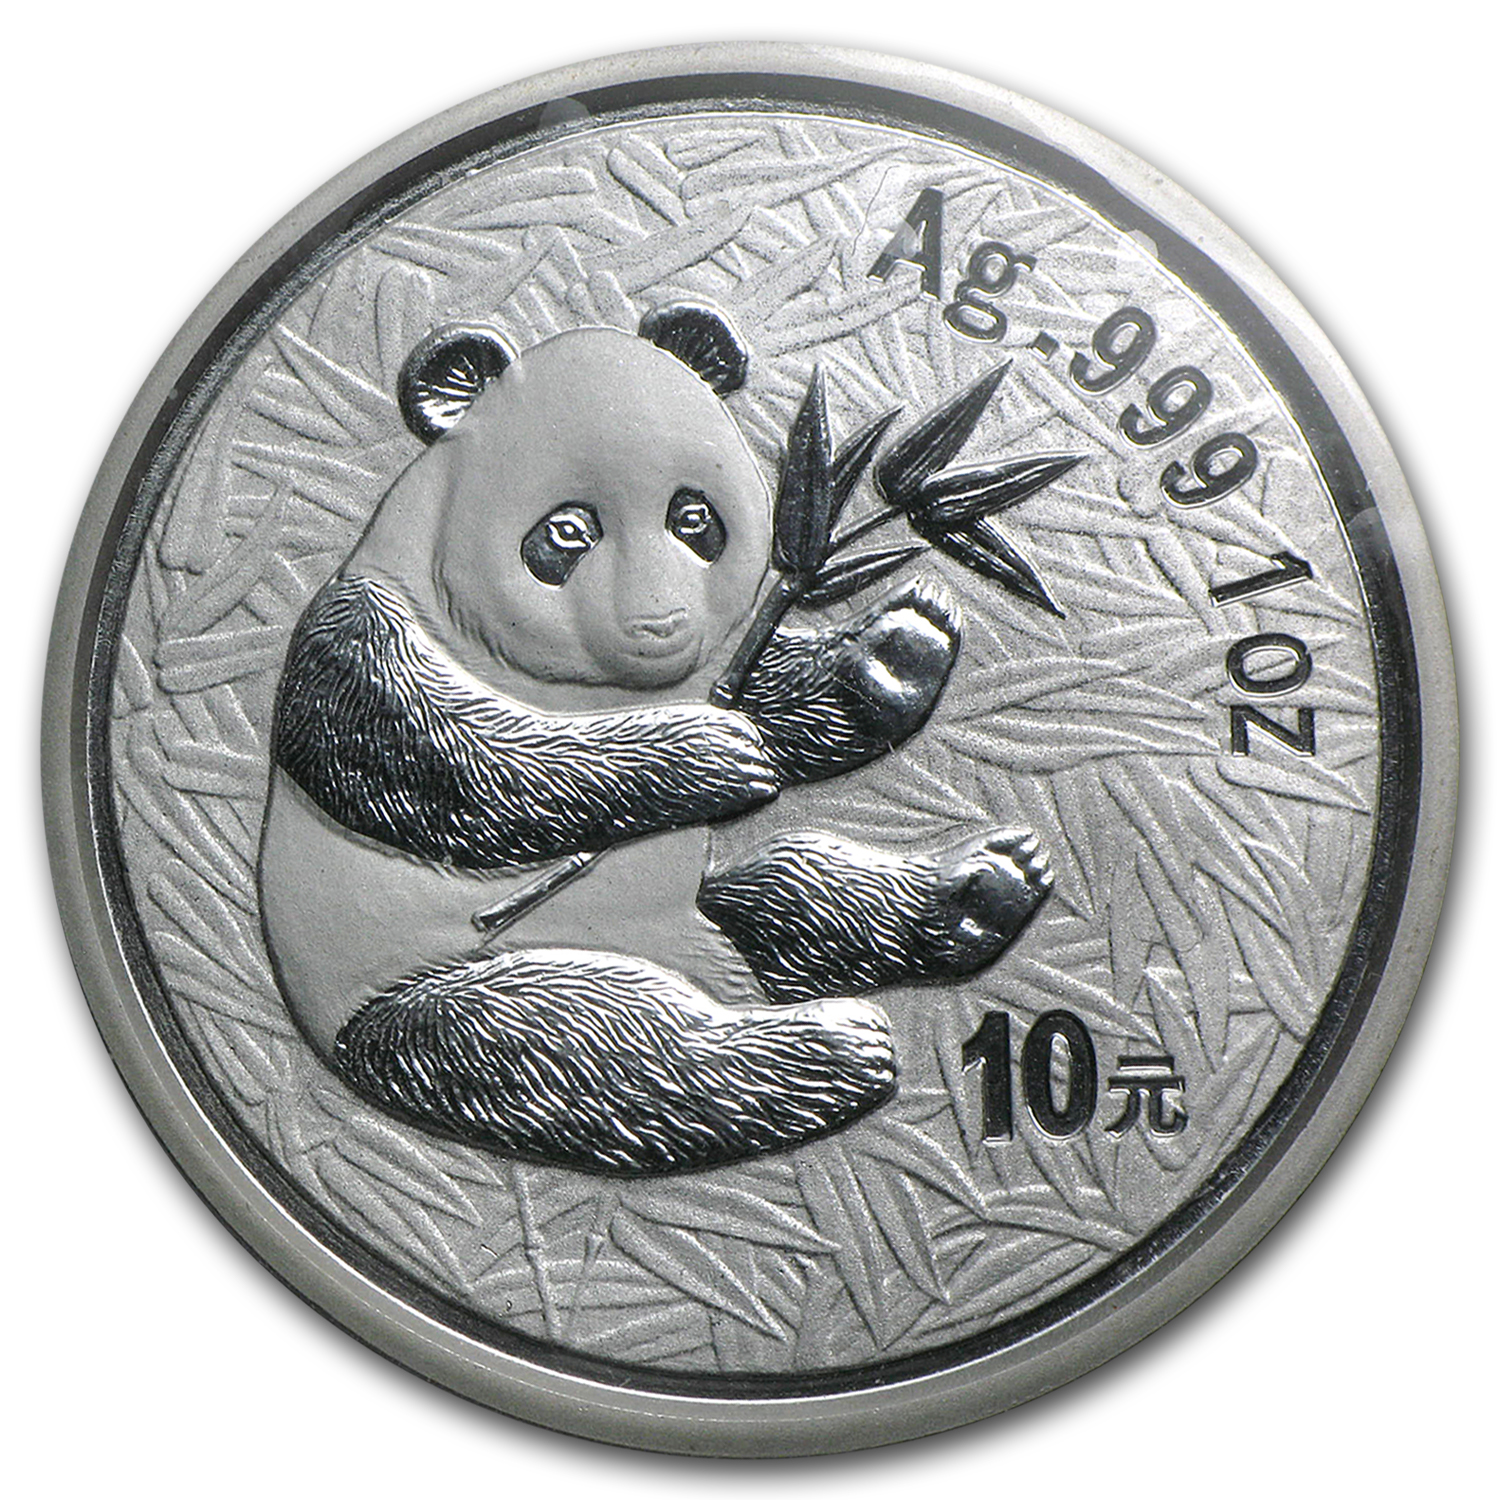 2000 China 1 oz Silver Panda Frosted BU (Sealed)